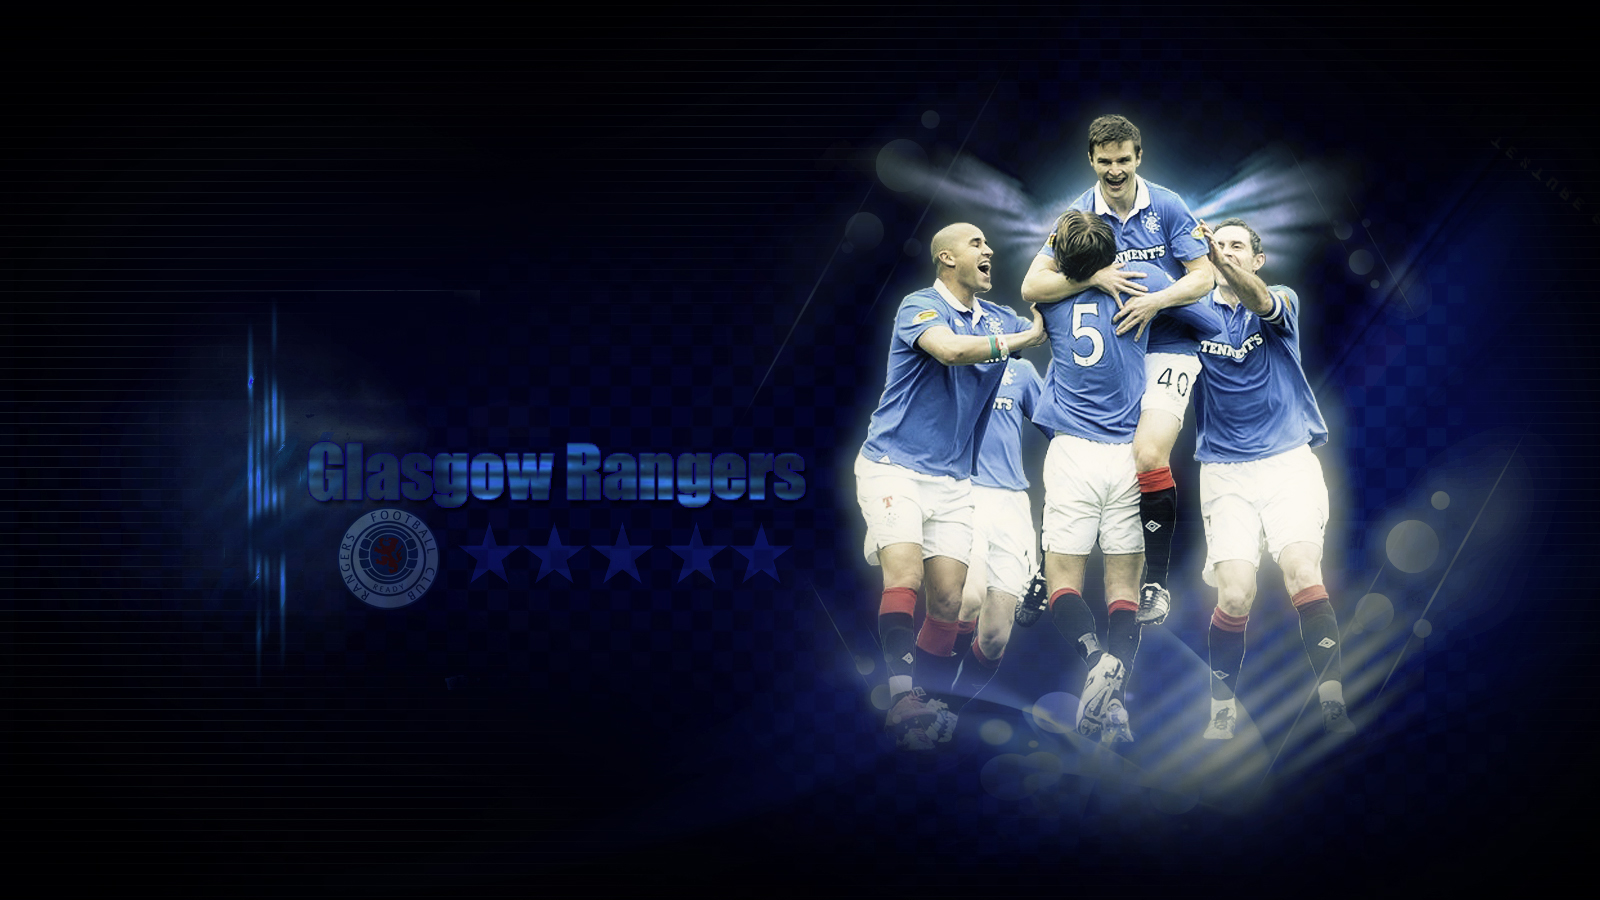 Glasgow Rangers Wallapper wallpaper Football Pictures and Photos 1600x900